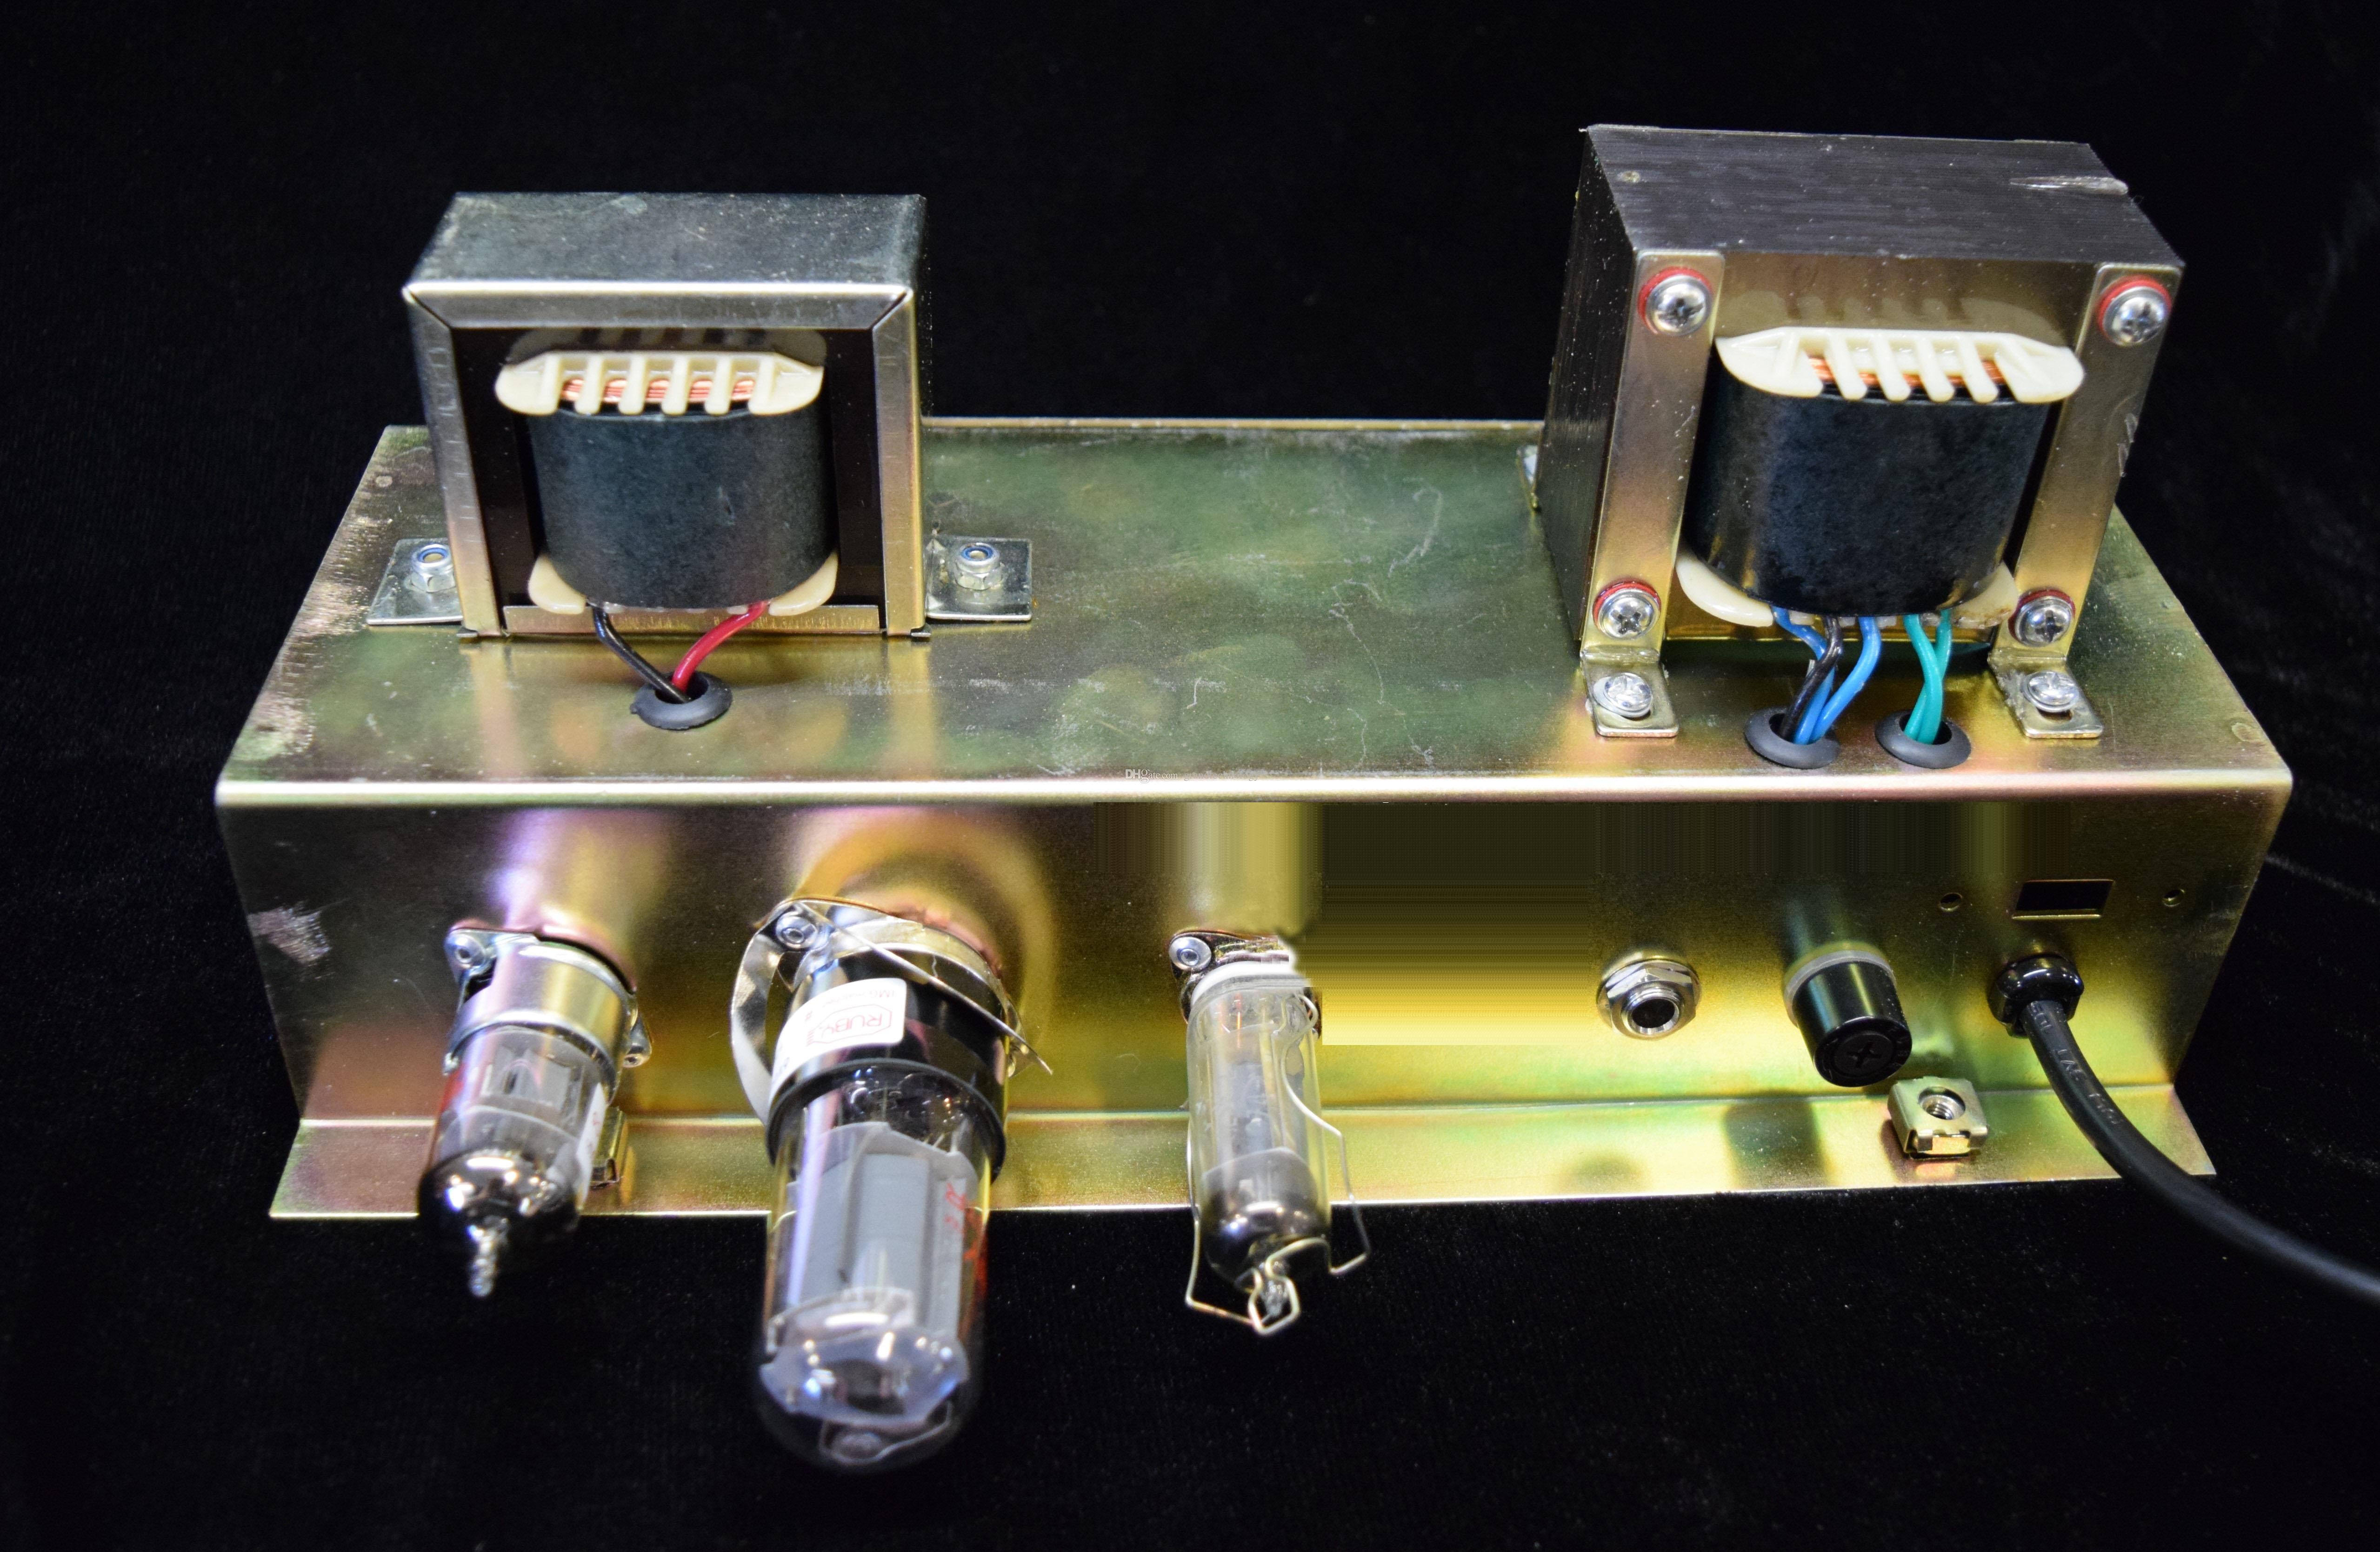 Hot Selling Custom Hand Wired All Tube Electric Guitar Amplifier Apmilifier Mini Bass Circuit And Explanation 5f1a Chassis Without Speaker Cabinet Musical Instruments Amp